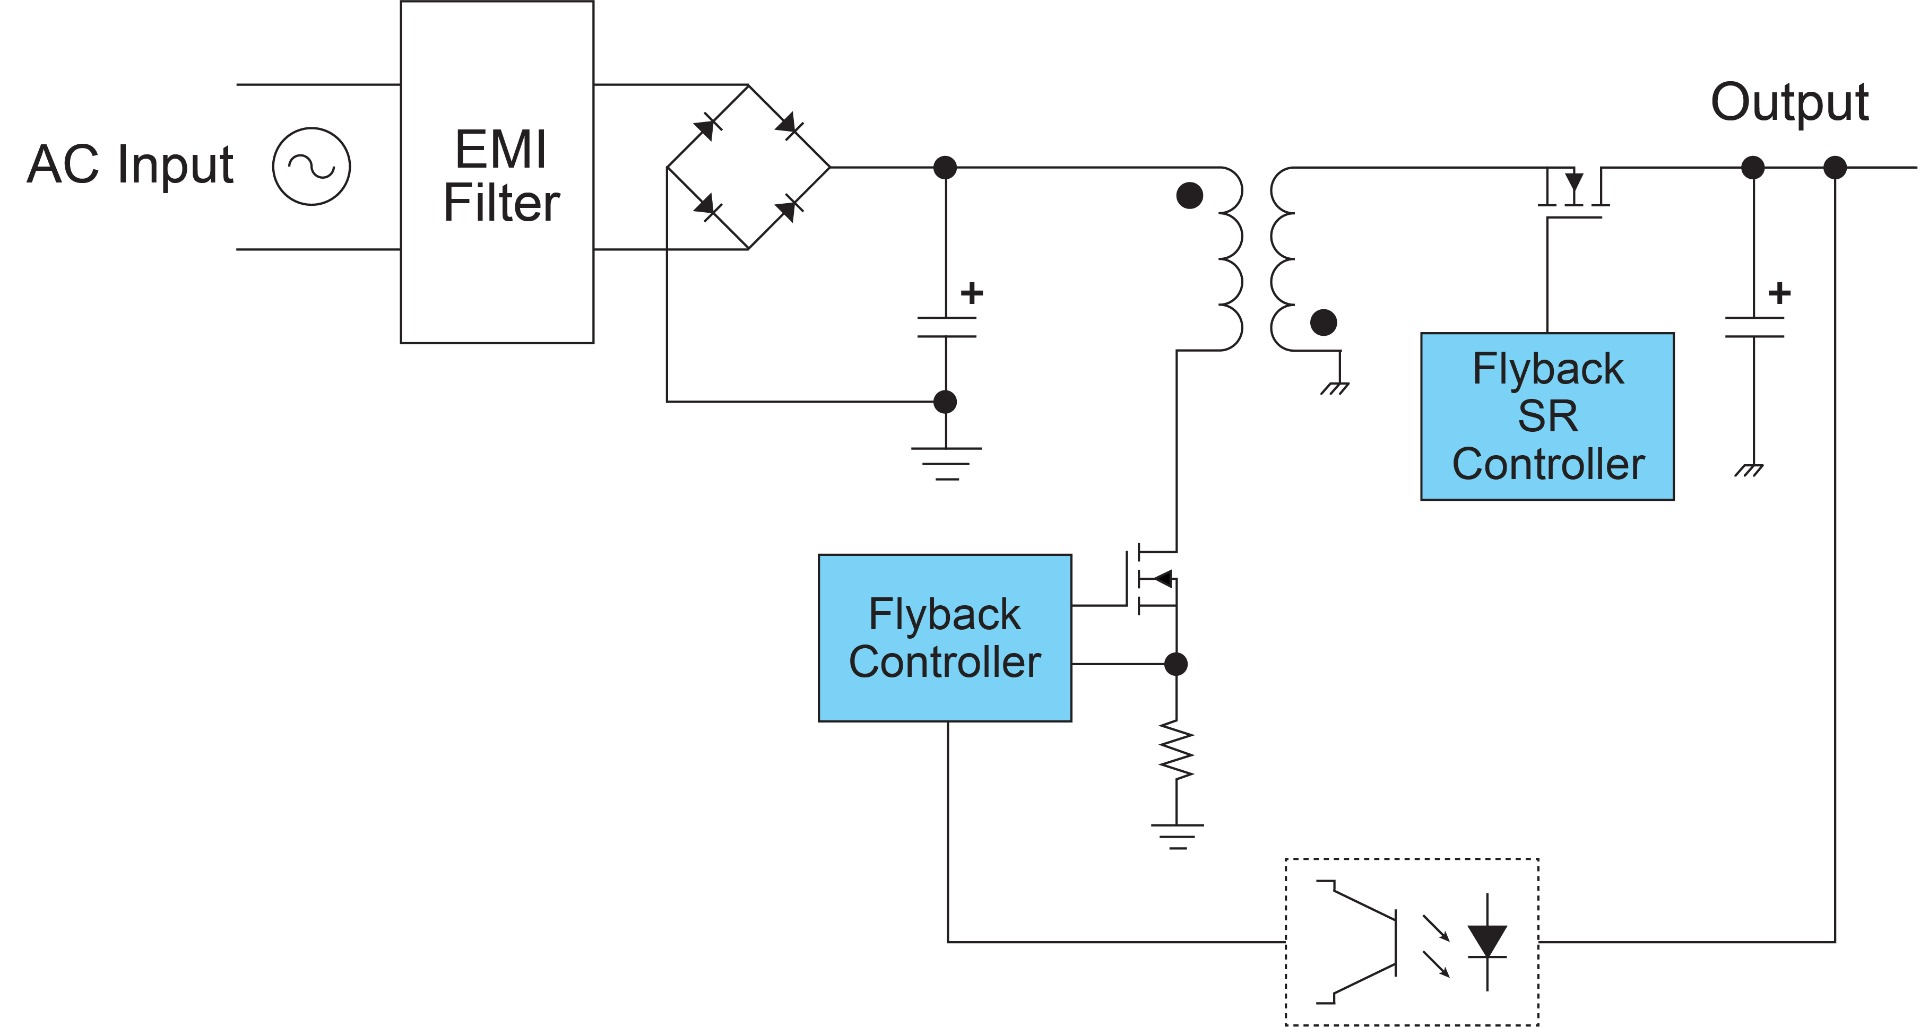 Figure 1: Typical Block Diagram for a Flyback Power Supply Used in Fast Chargers